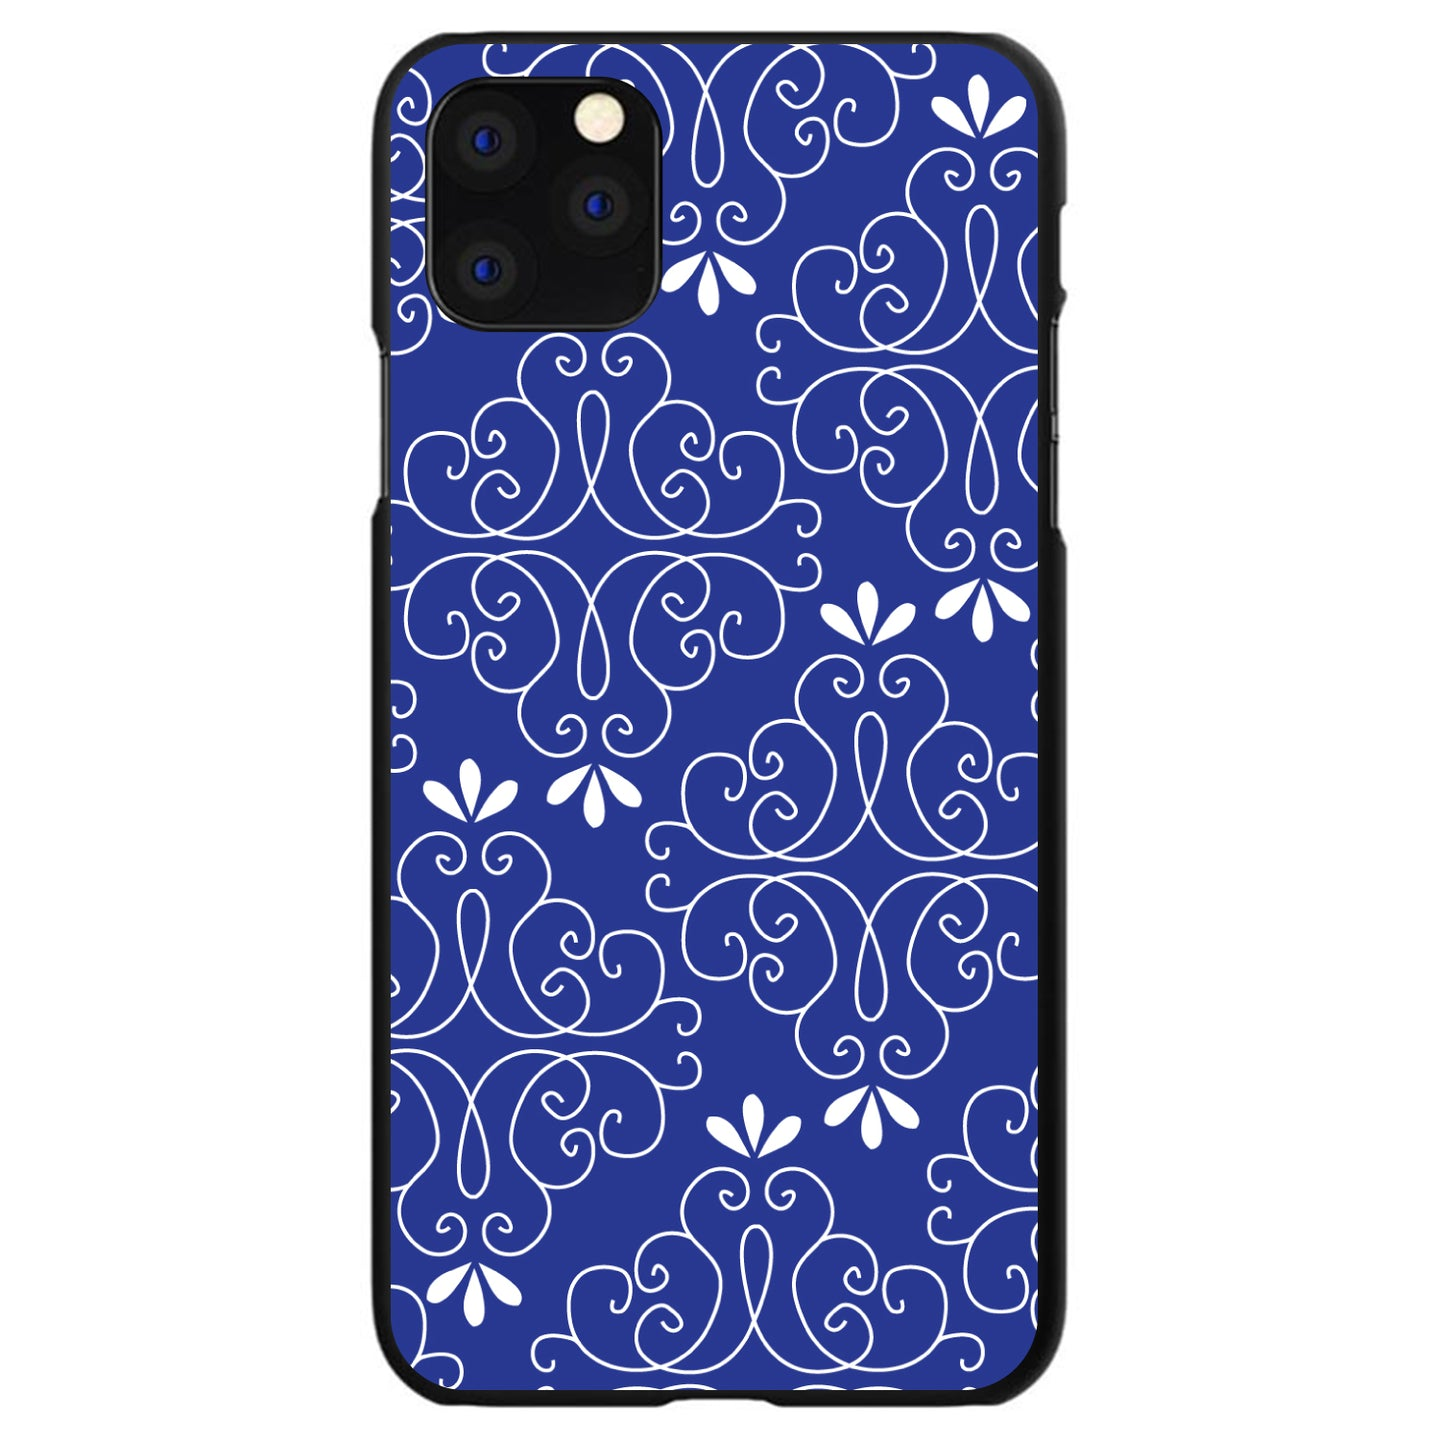 DistinctInk® Hard Plastic Snap-On Case for Apple iPhone - Dark Blue White Floral